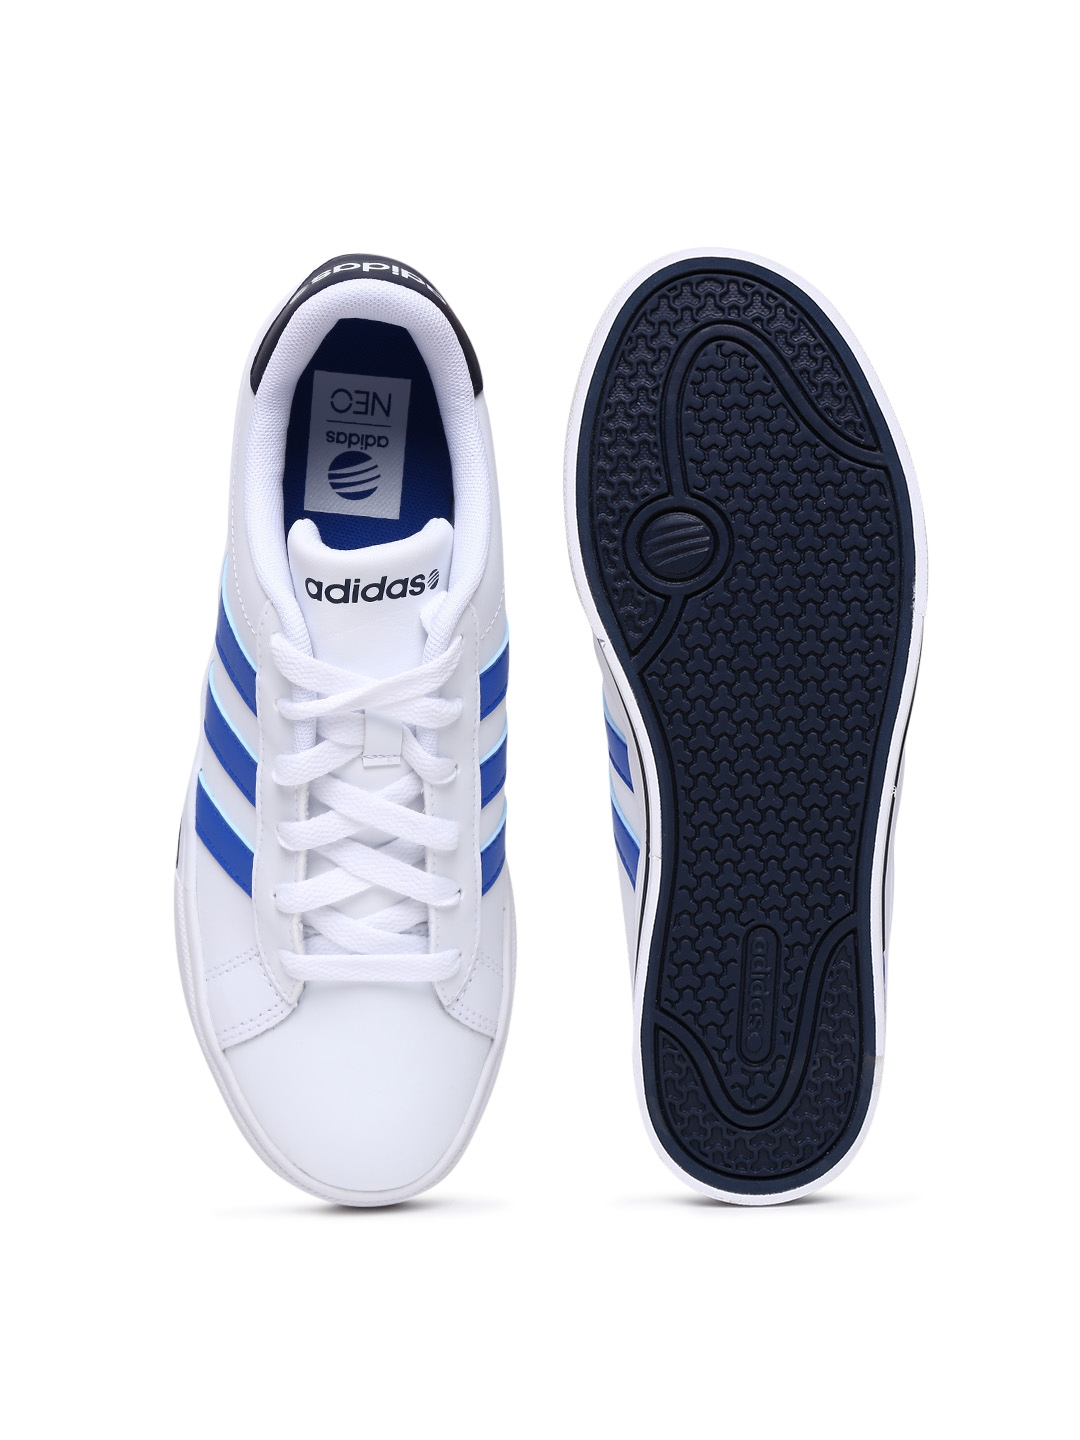 adidas neo leather white blue .